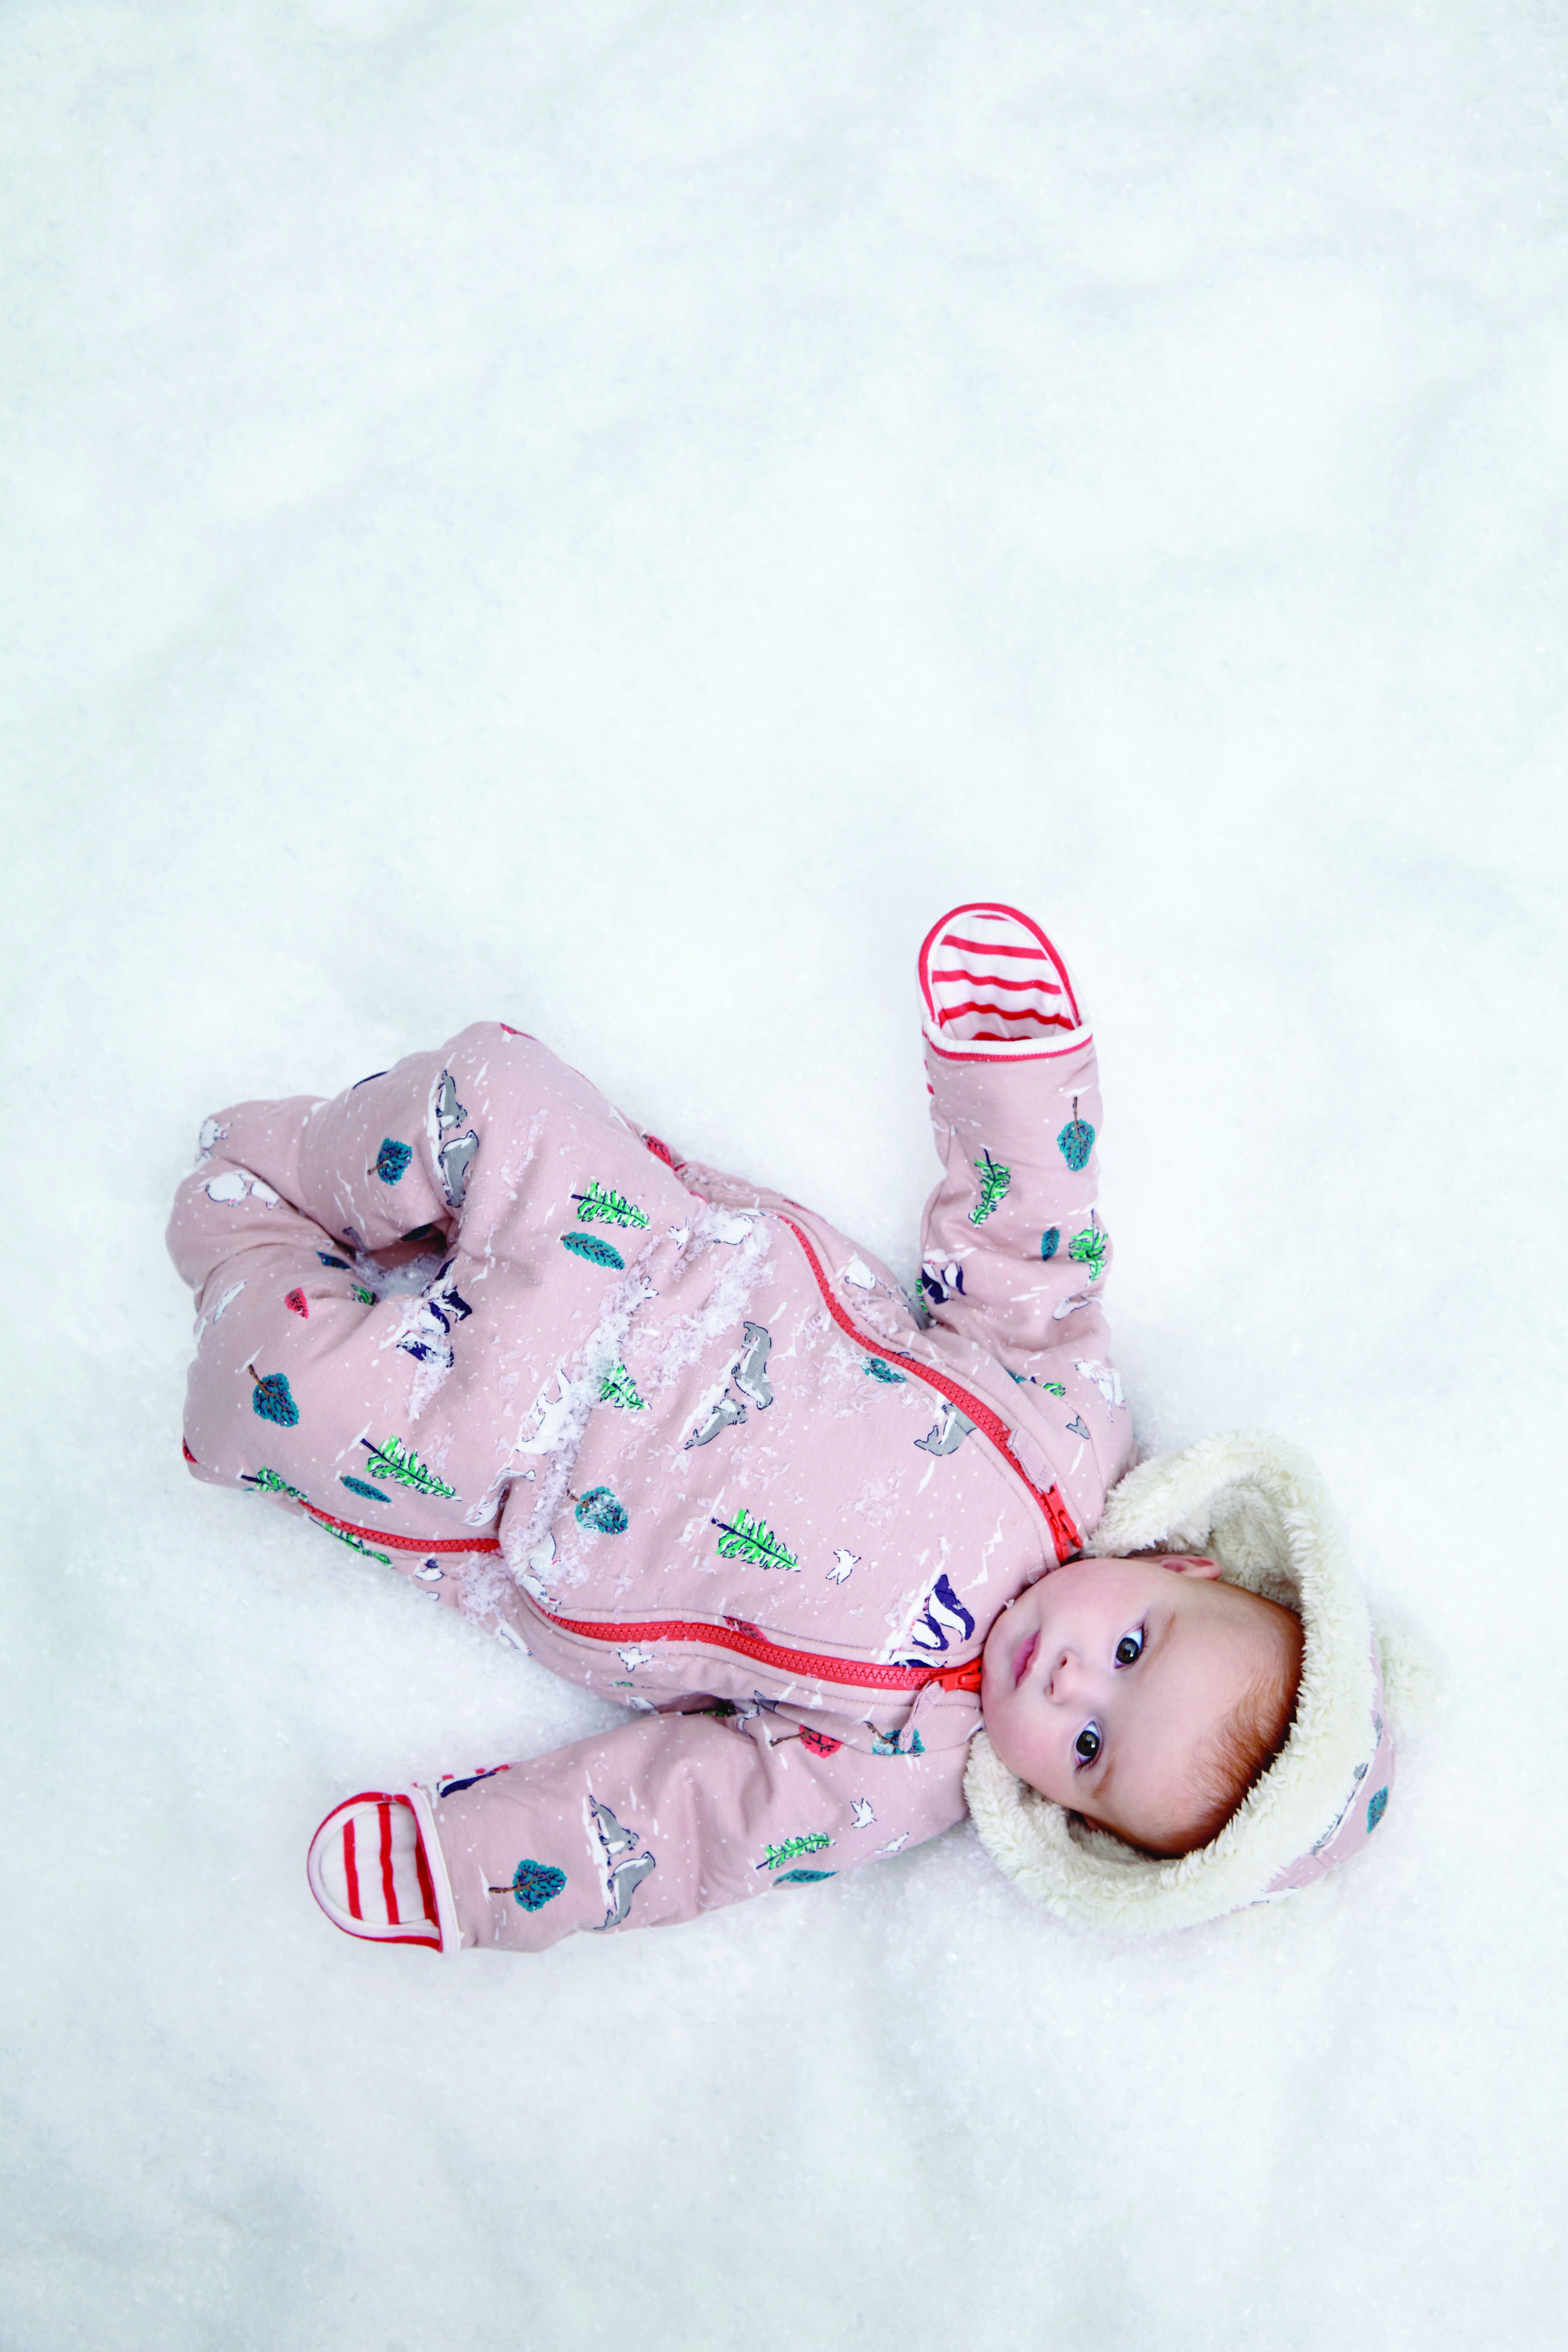 Baby London Snowsuit Photoshoot Boden Snowsuit Fashion For Baby